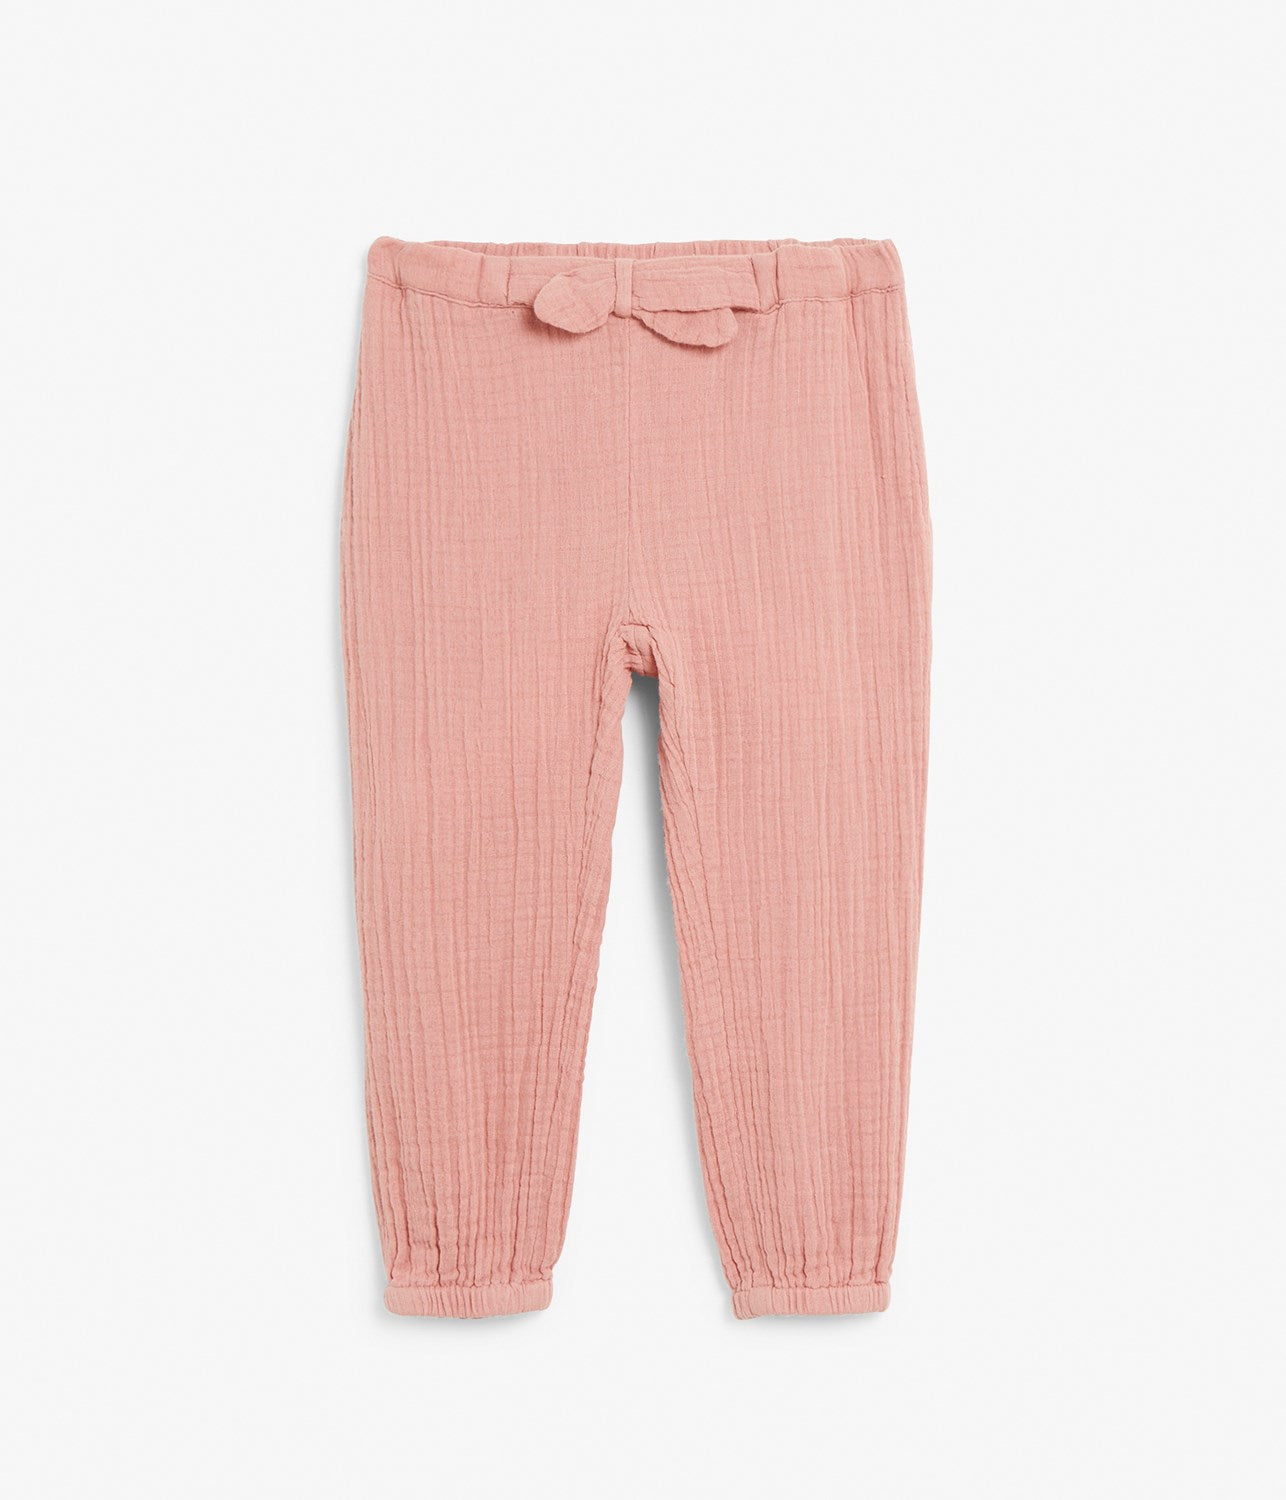 Kids crepe trousers